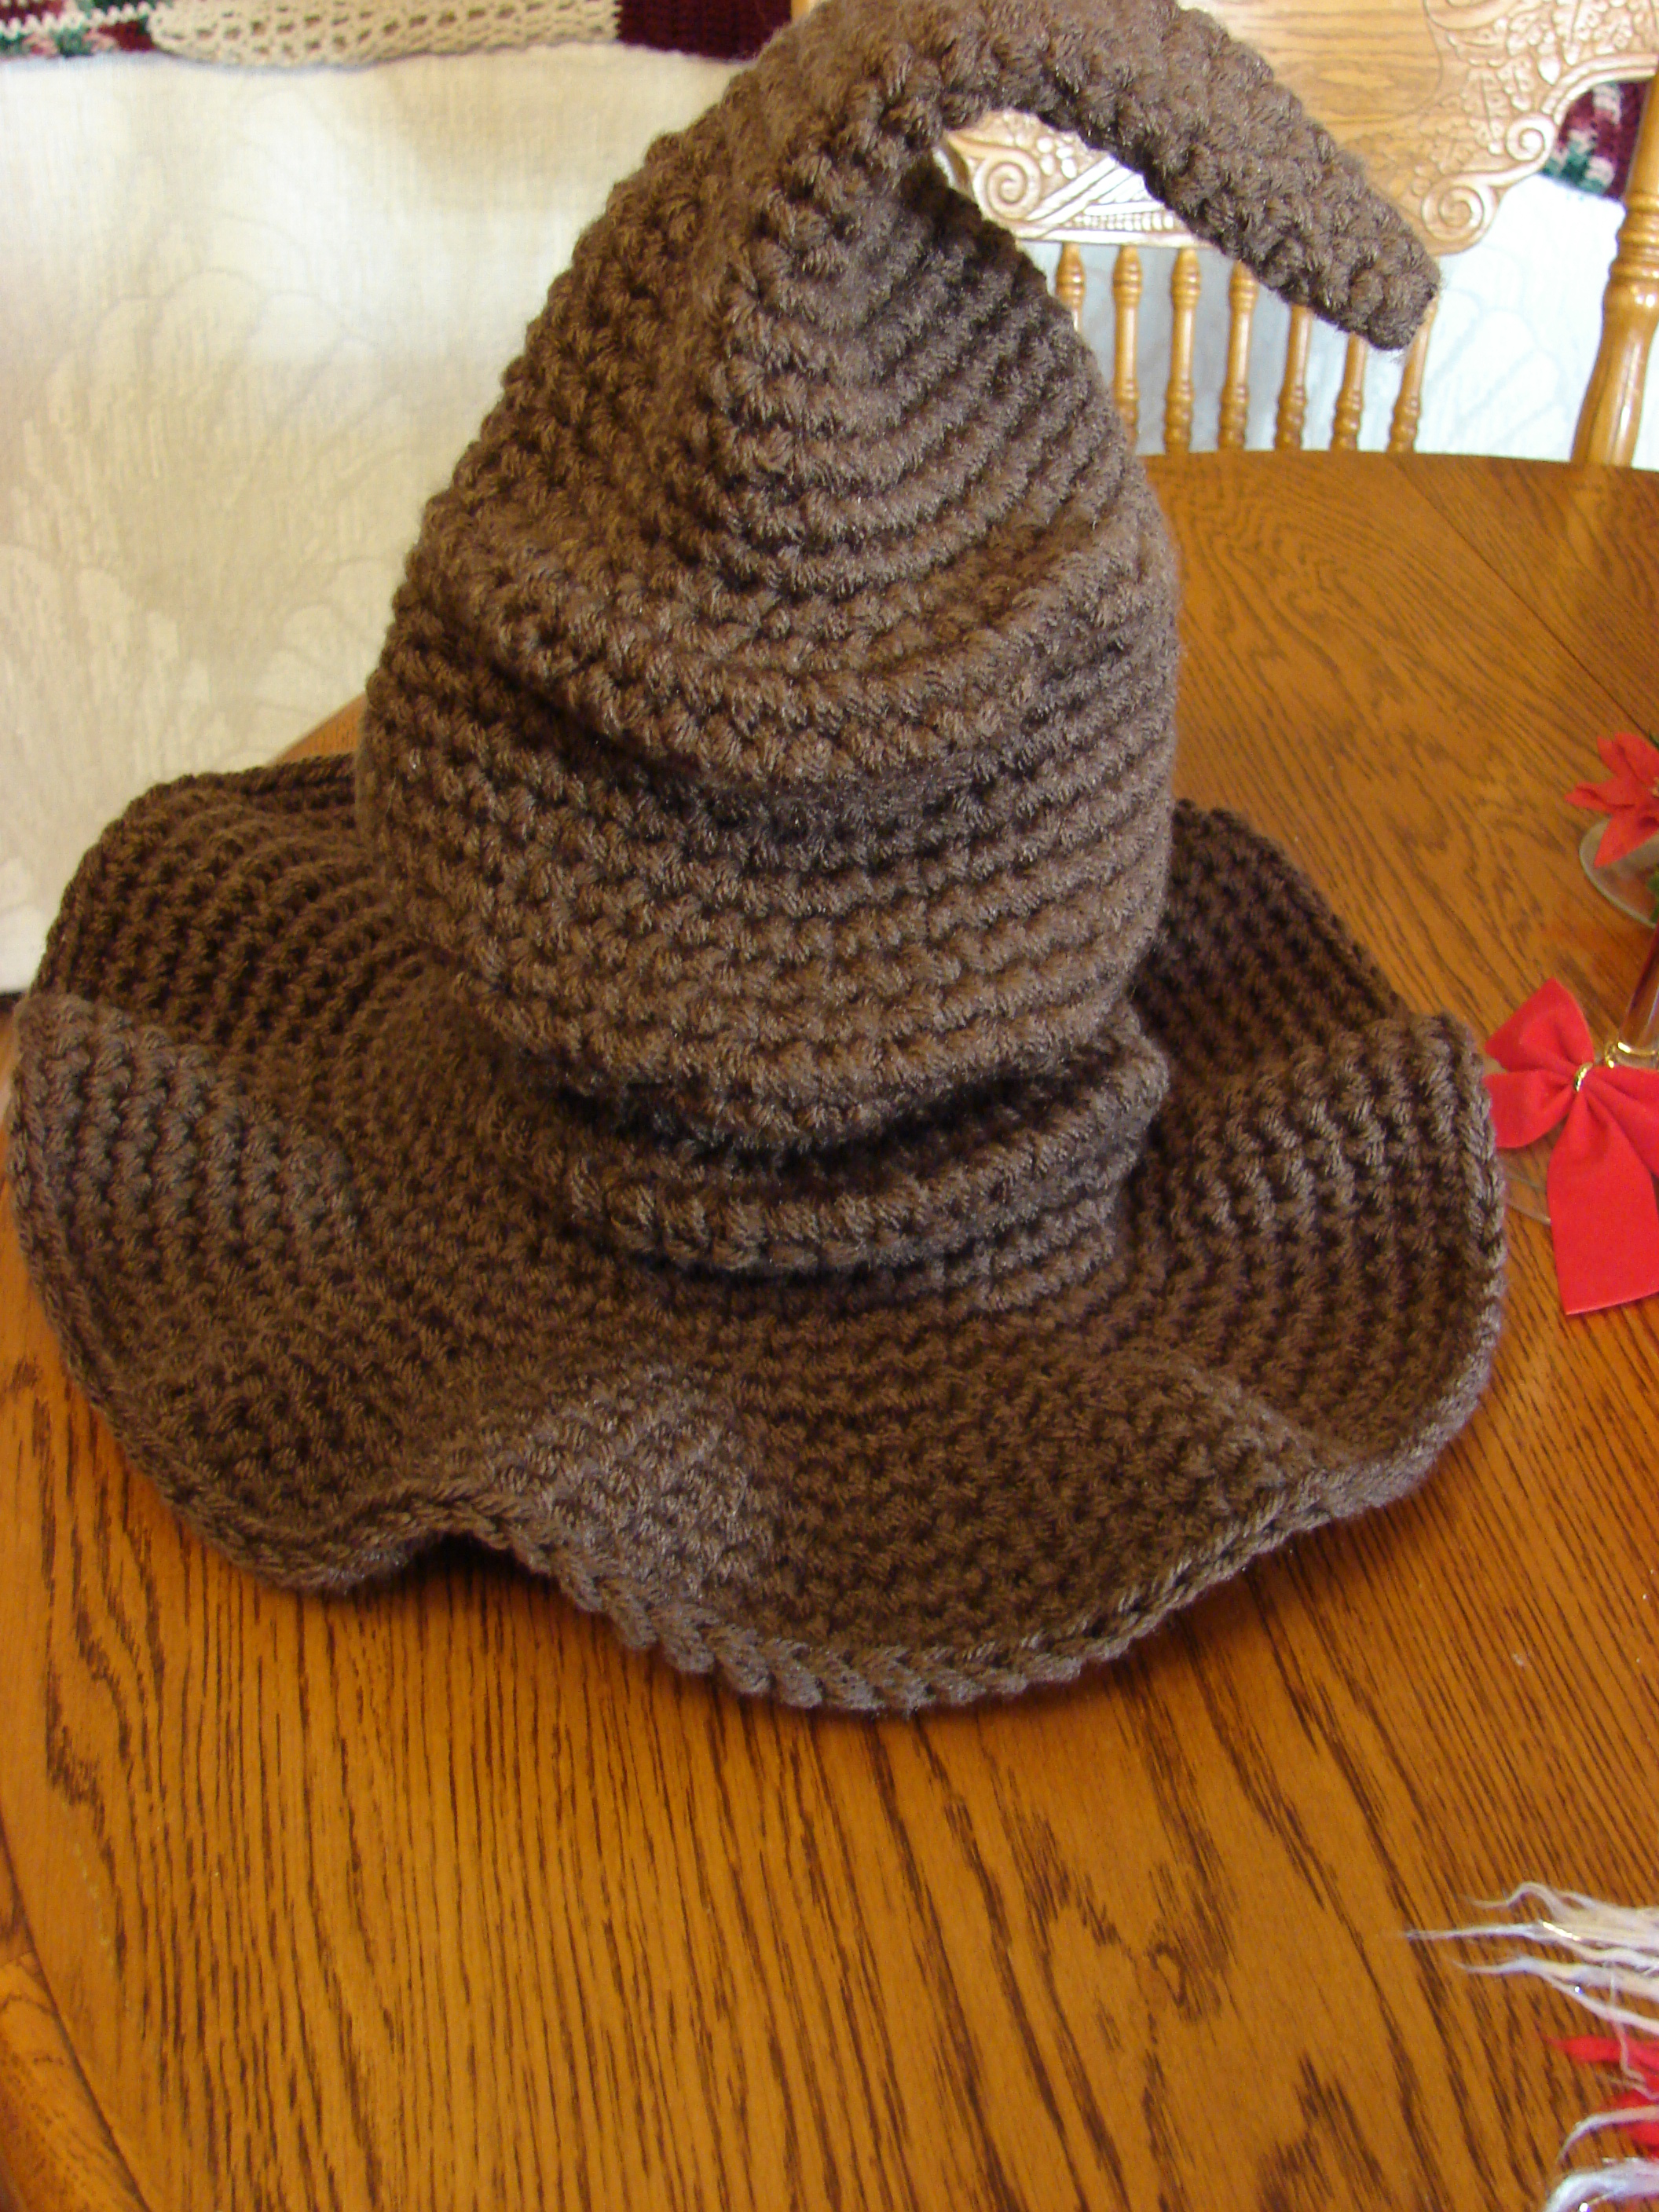 Crochet Patterns Harry Potter : Pictured below is my Niece and her Friend wearing the hats after they ...